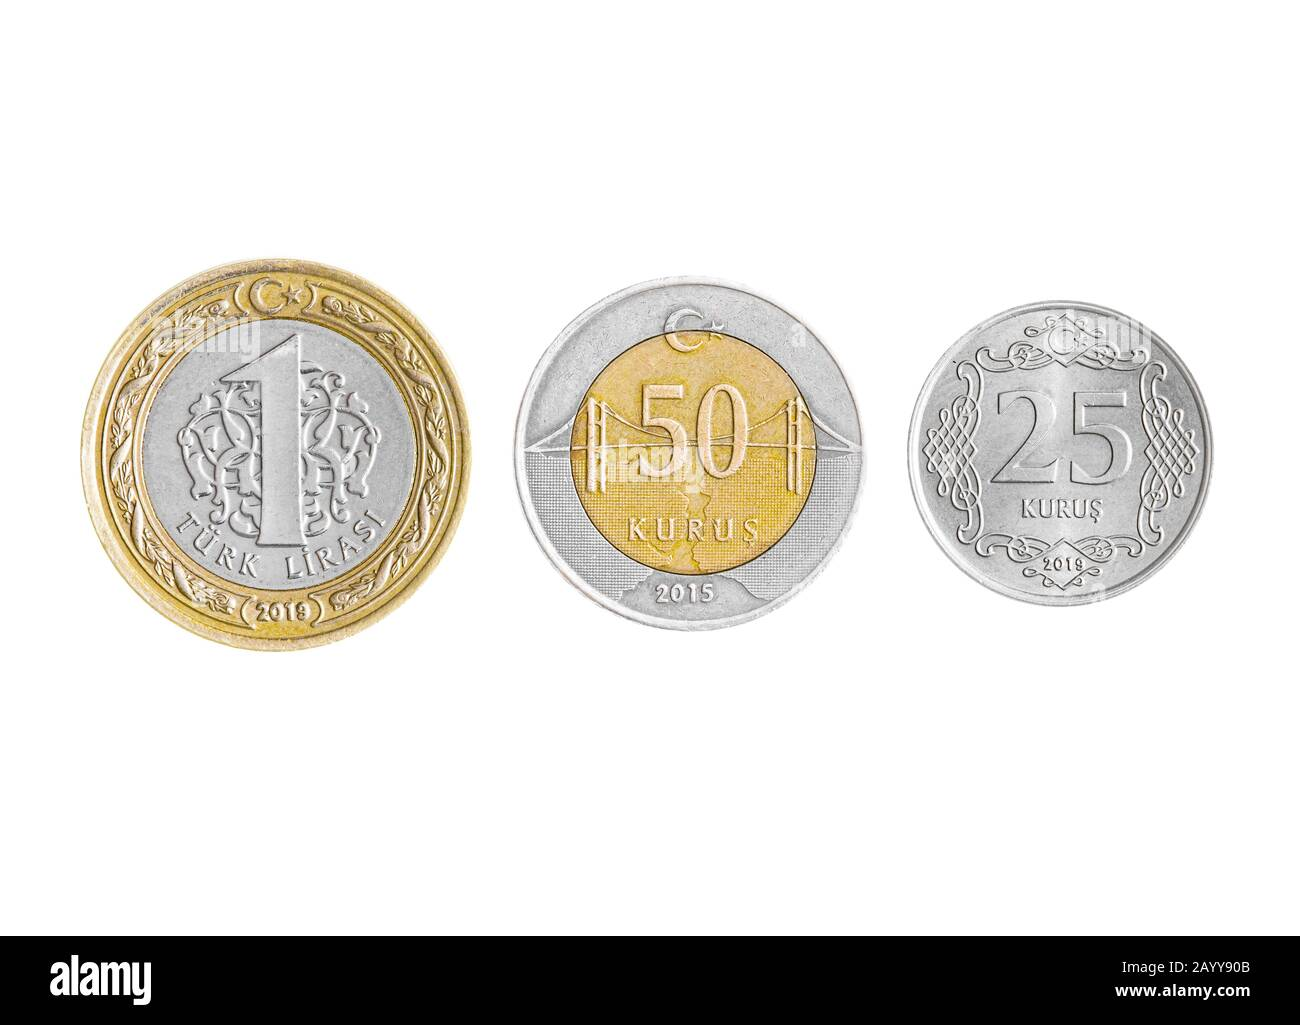 Turkish Lira coins collection set isolated on white background. Stock Photo